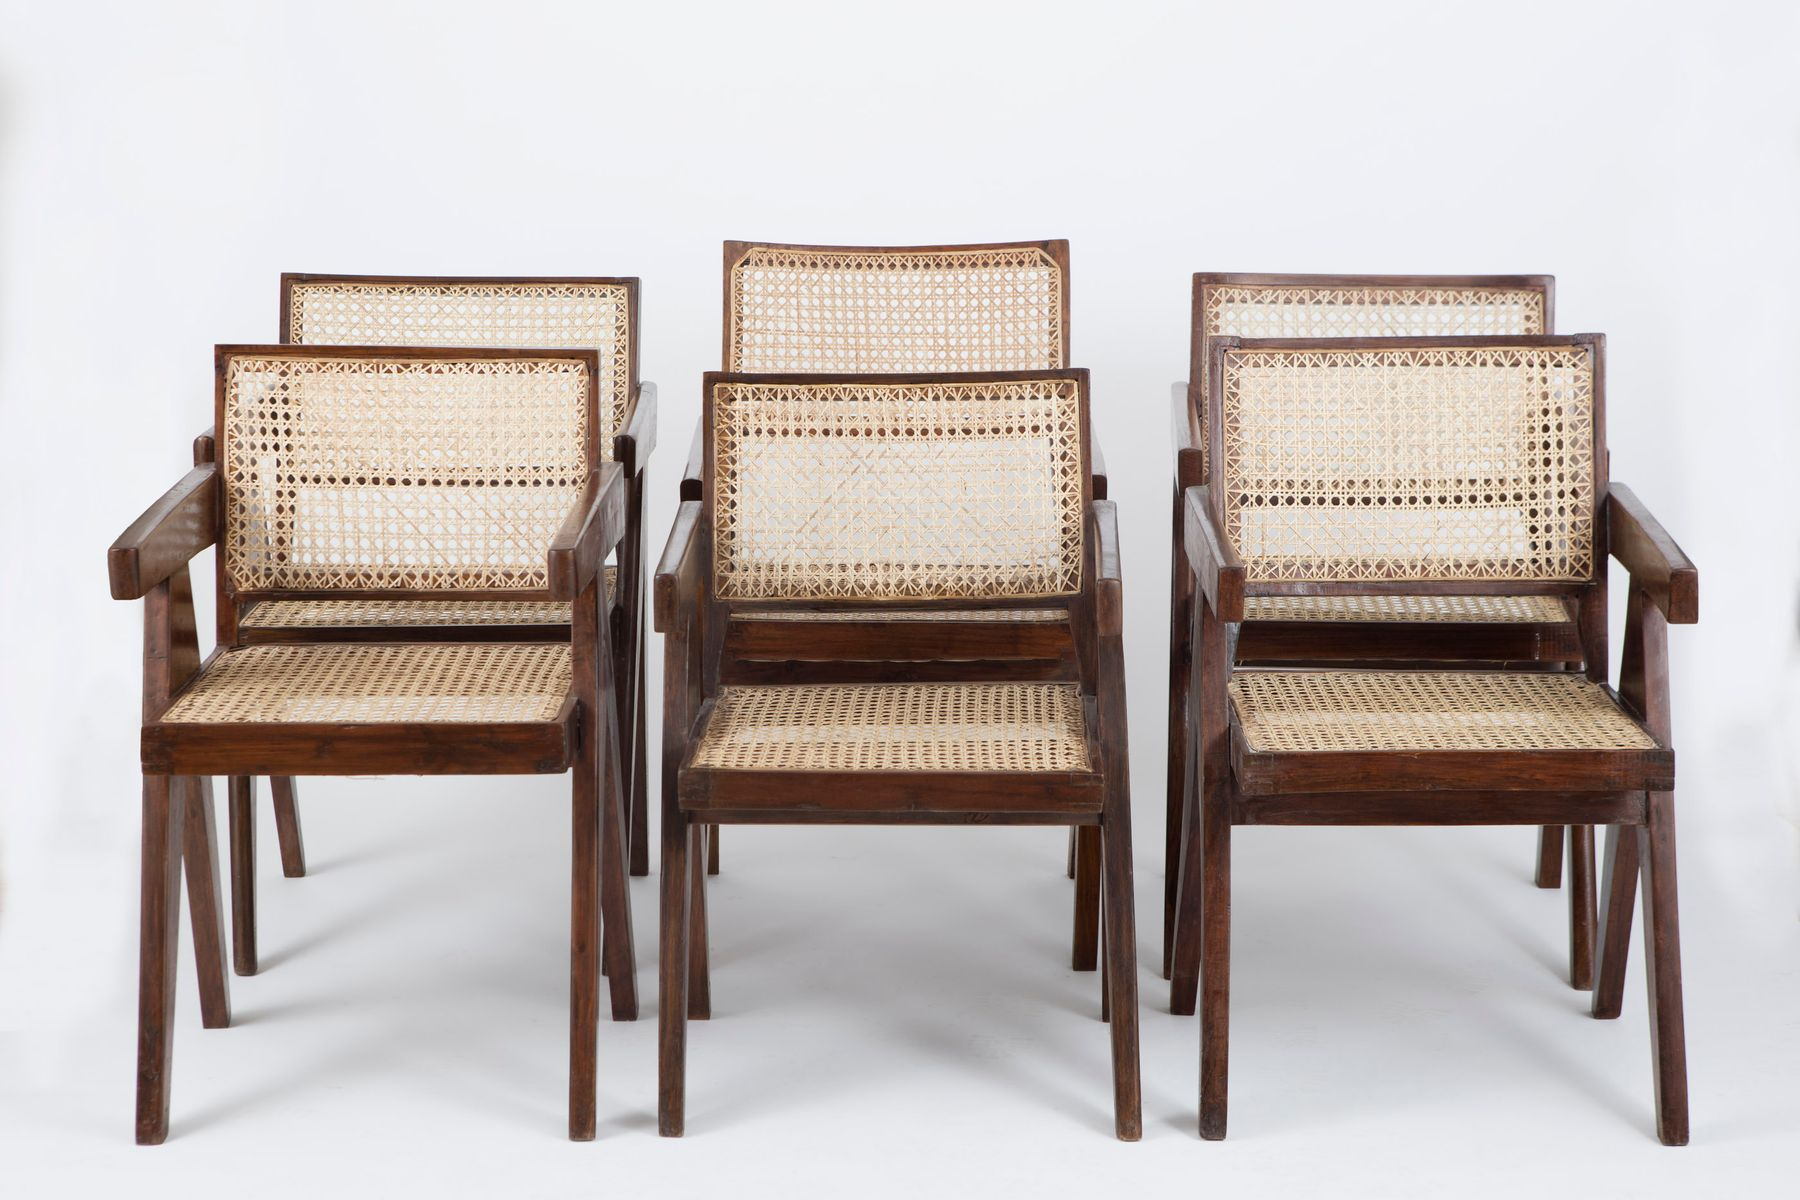 how do you cane a chair wooden accessories office chairs by pierre jeanneret set of 6 for sale